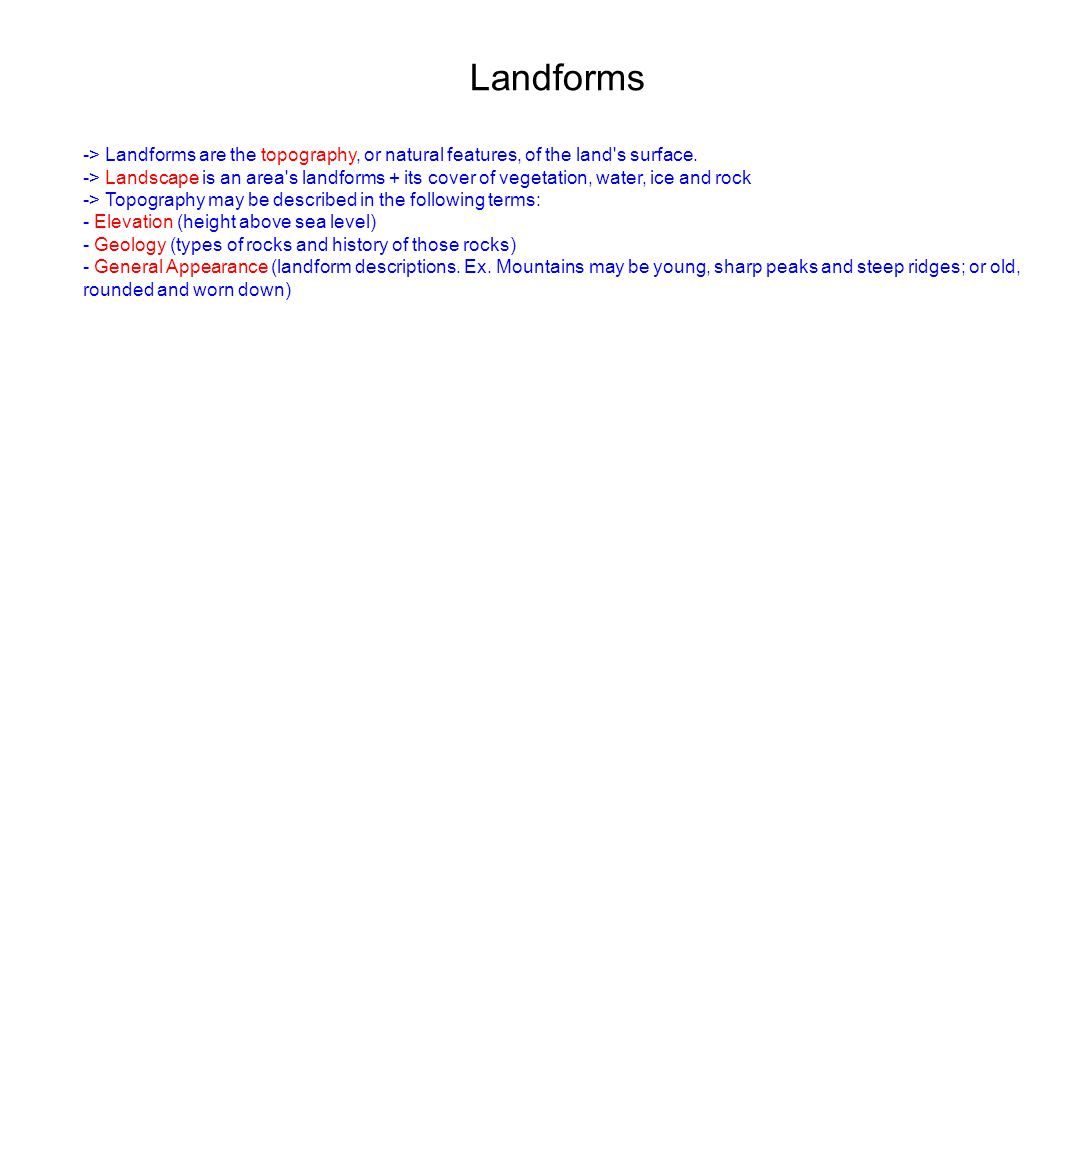 Landforms -> Landforms are the topography, or natural features, of the land s surface.